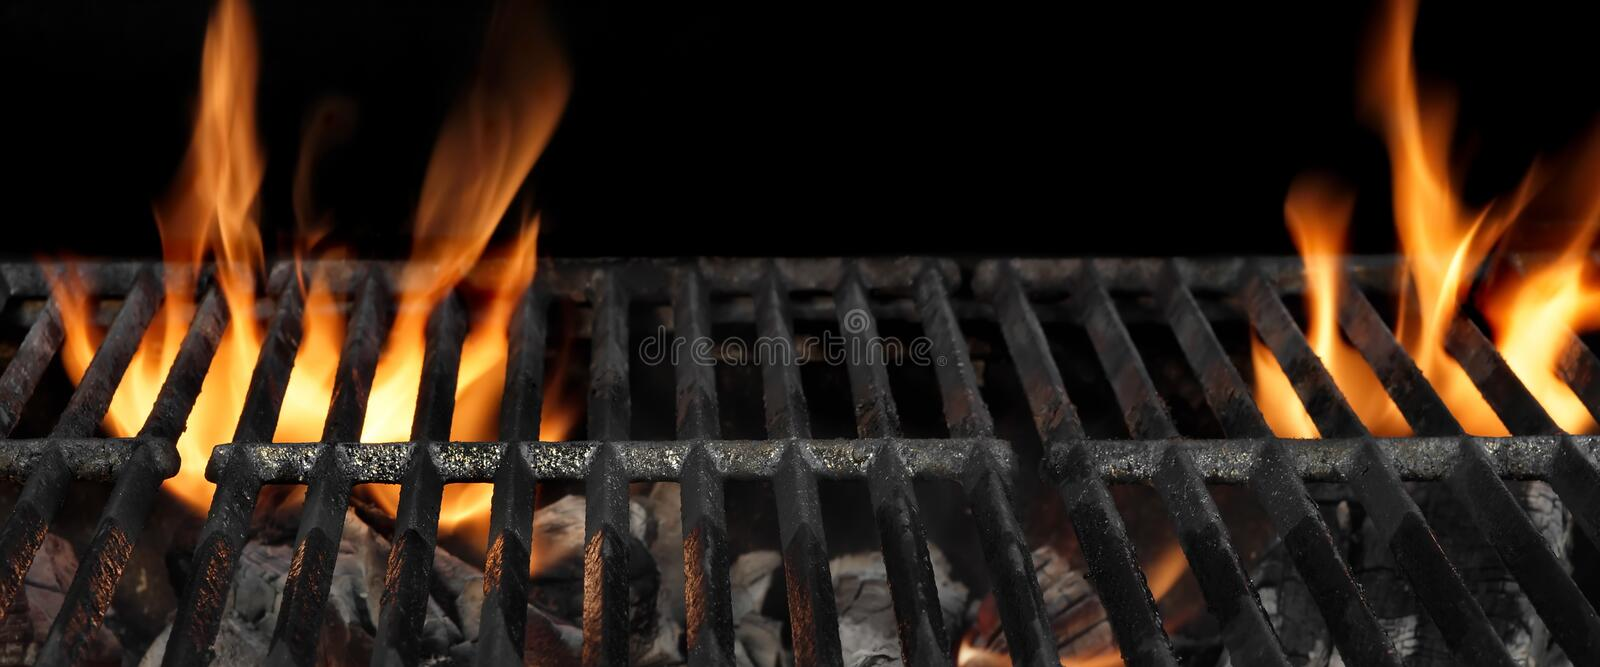 Barbecue Fire Grill Isolated On The Black Background, Close Up. Empty Barbecue Flaming Charcoal Grill With Bright Flames Of Fire Isolated On The Black Background royalty free stock photography